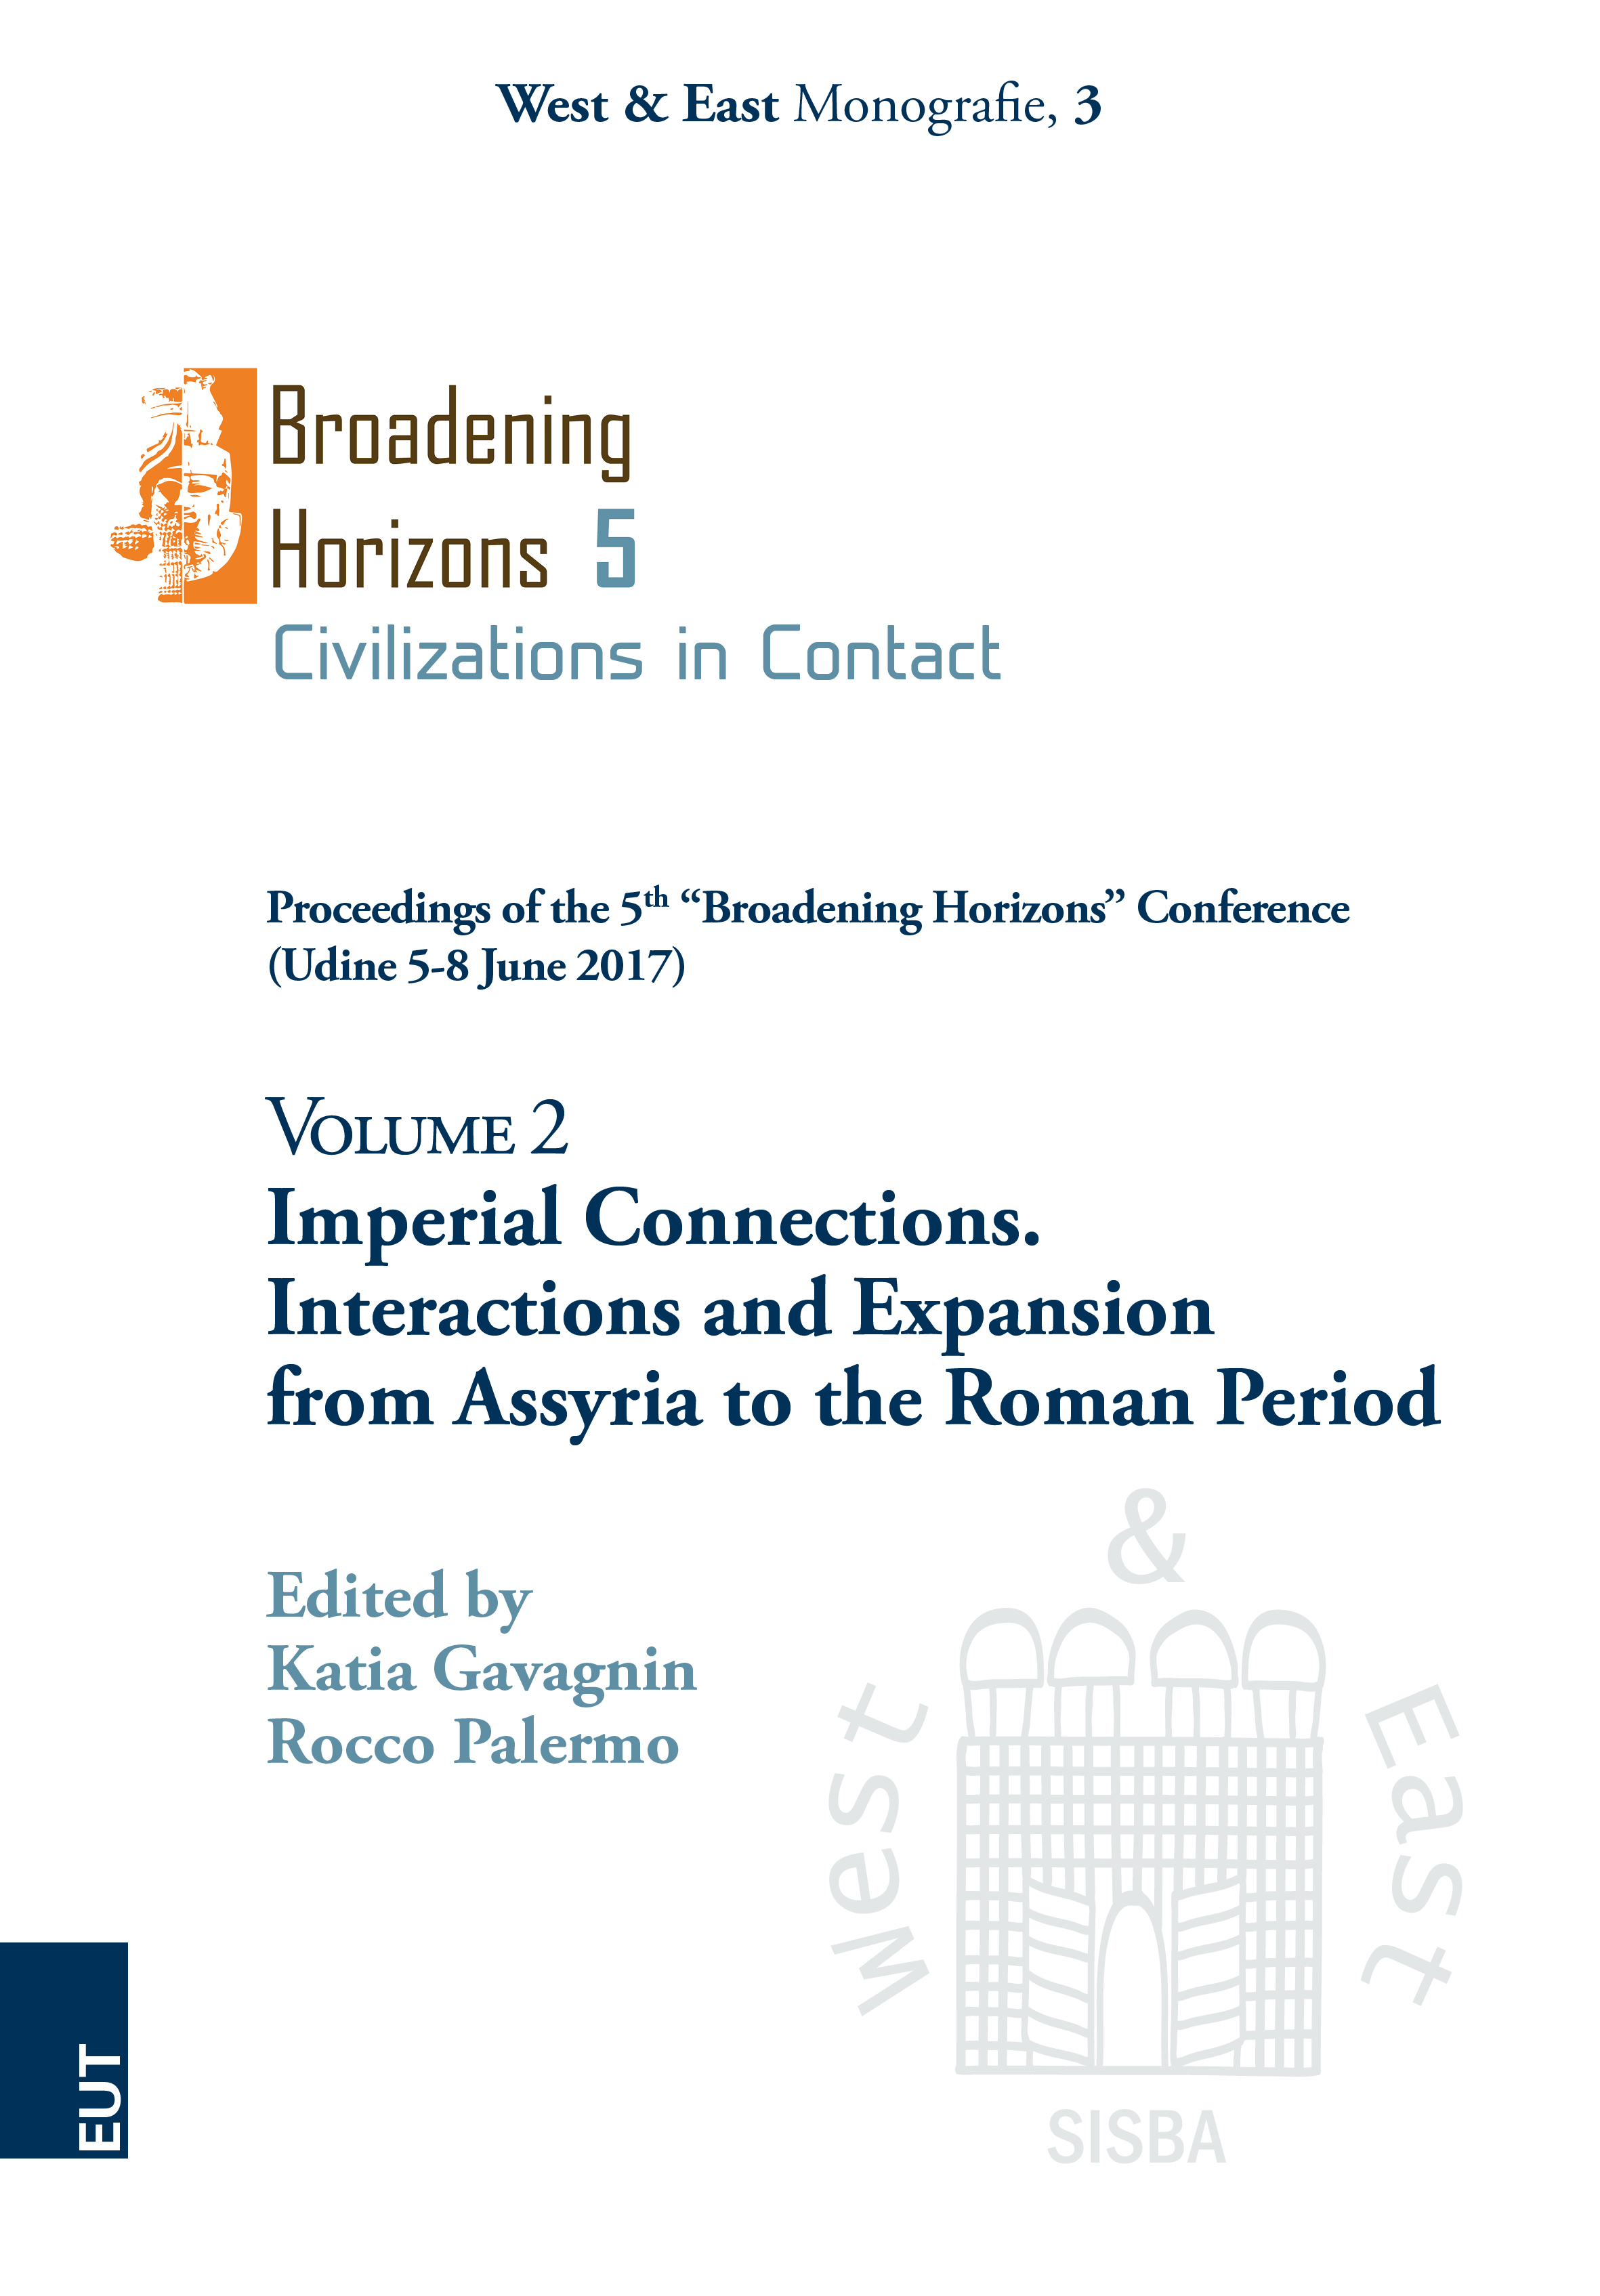 """Imperial Connections. Interactions and Expansion from Assyria to the Roman Period. Volume 2. Proceedings of the 5<sup>th</sup> """"Broadening Horizons"""" Conference (Udine 5-8 June 2017)"""